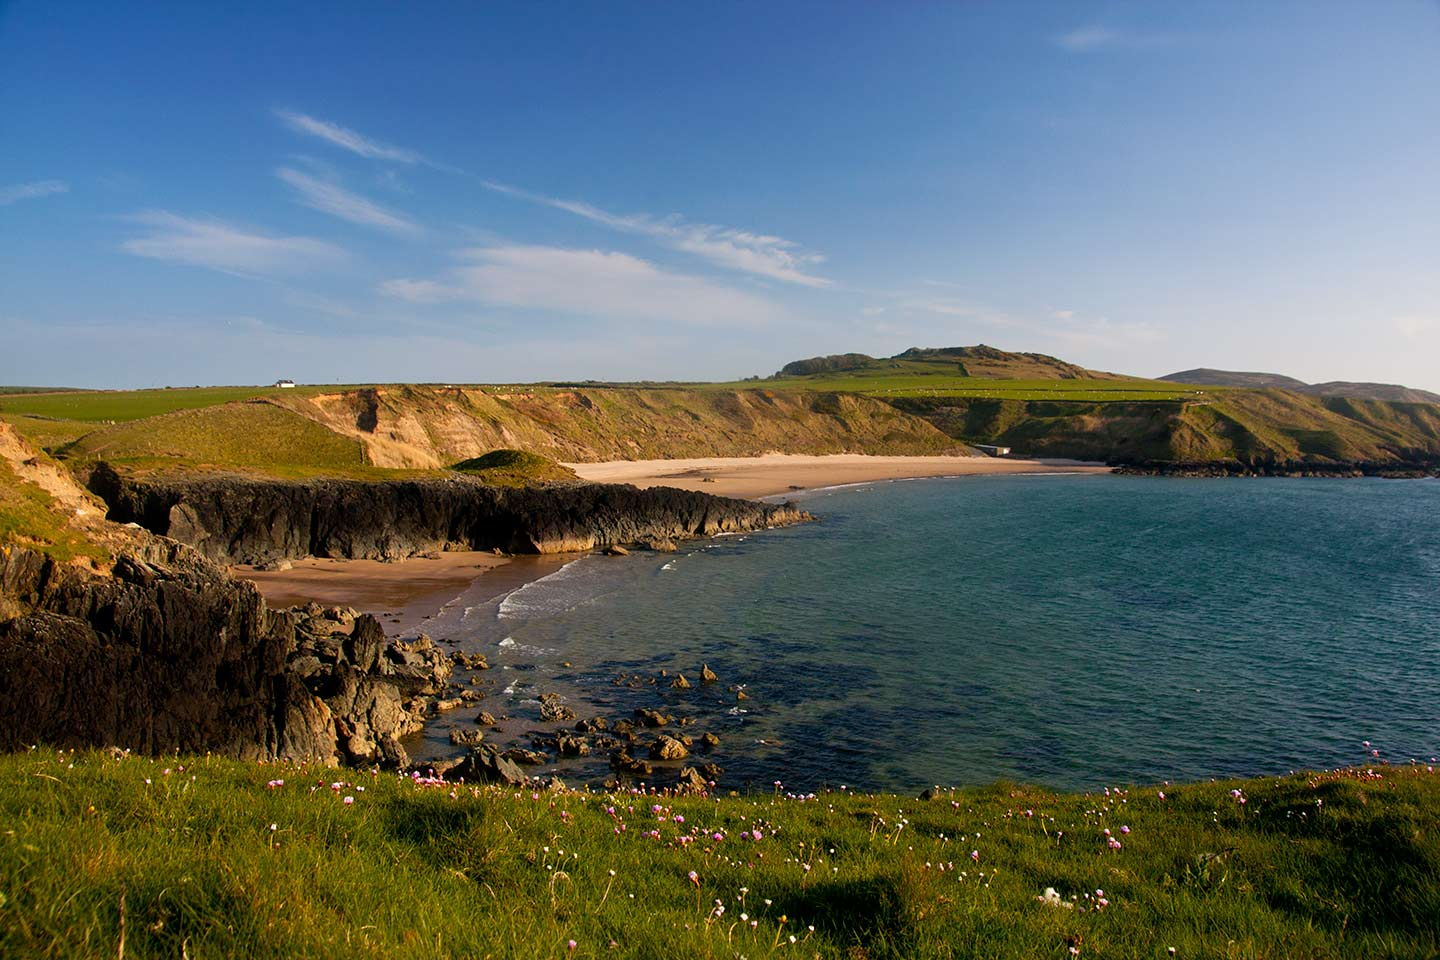 Image of Whistling Sands, or Porth Oer beach